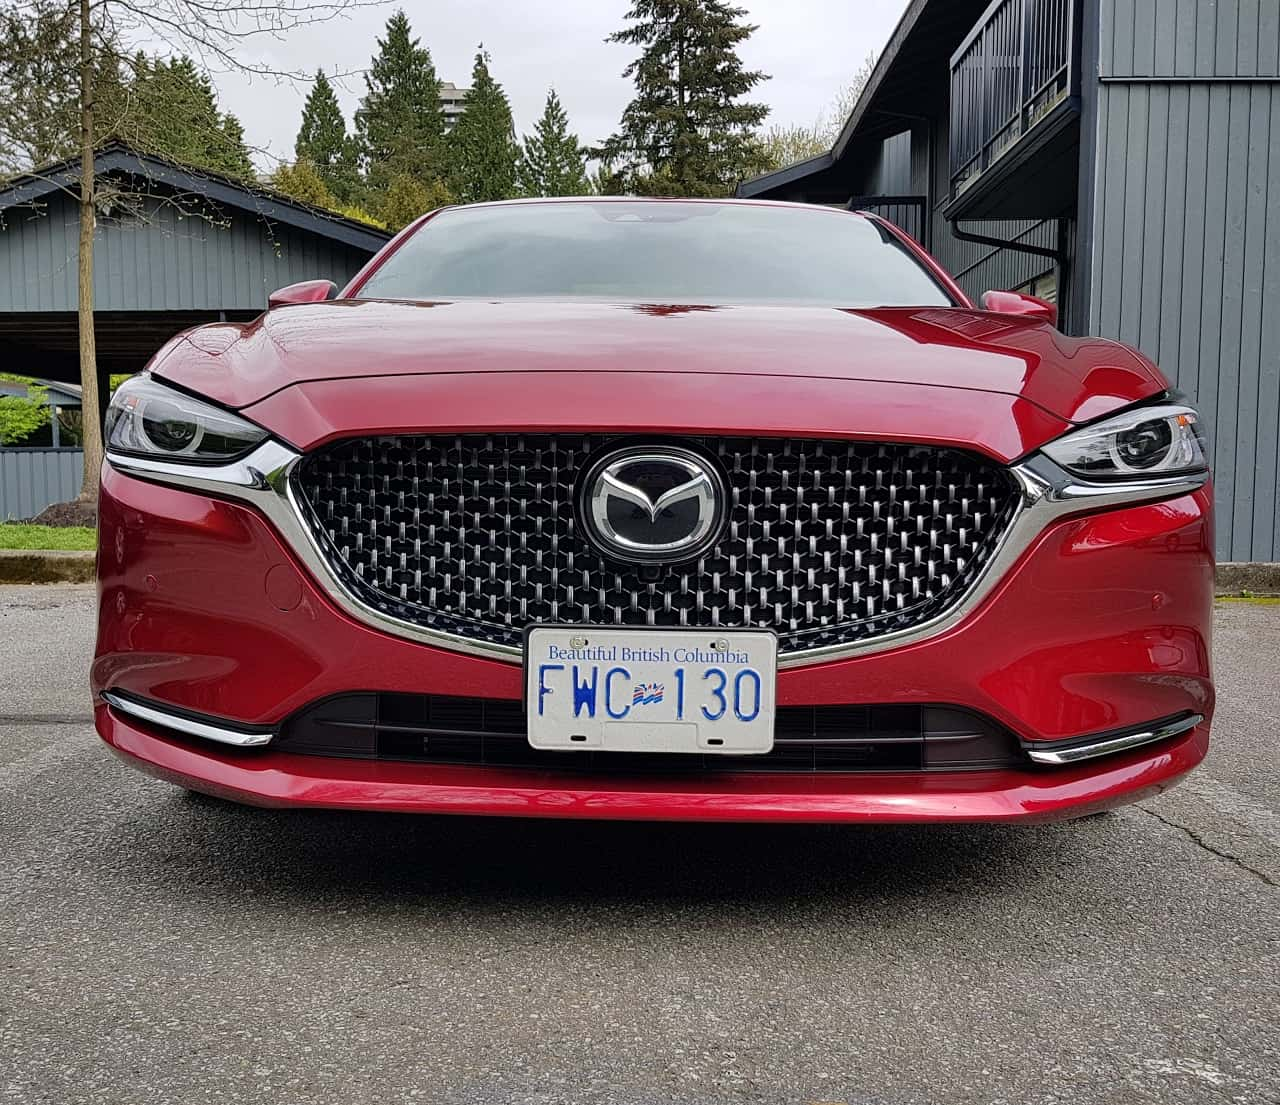 2018 Mazda Mazda6 Camshaft: 2018 Mazda6 GT Review: Now With Turbo Power